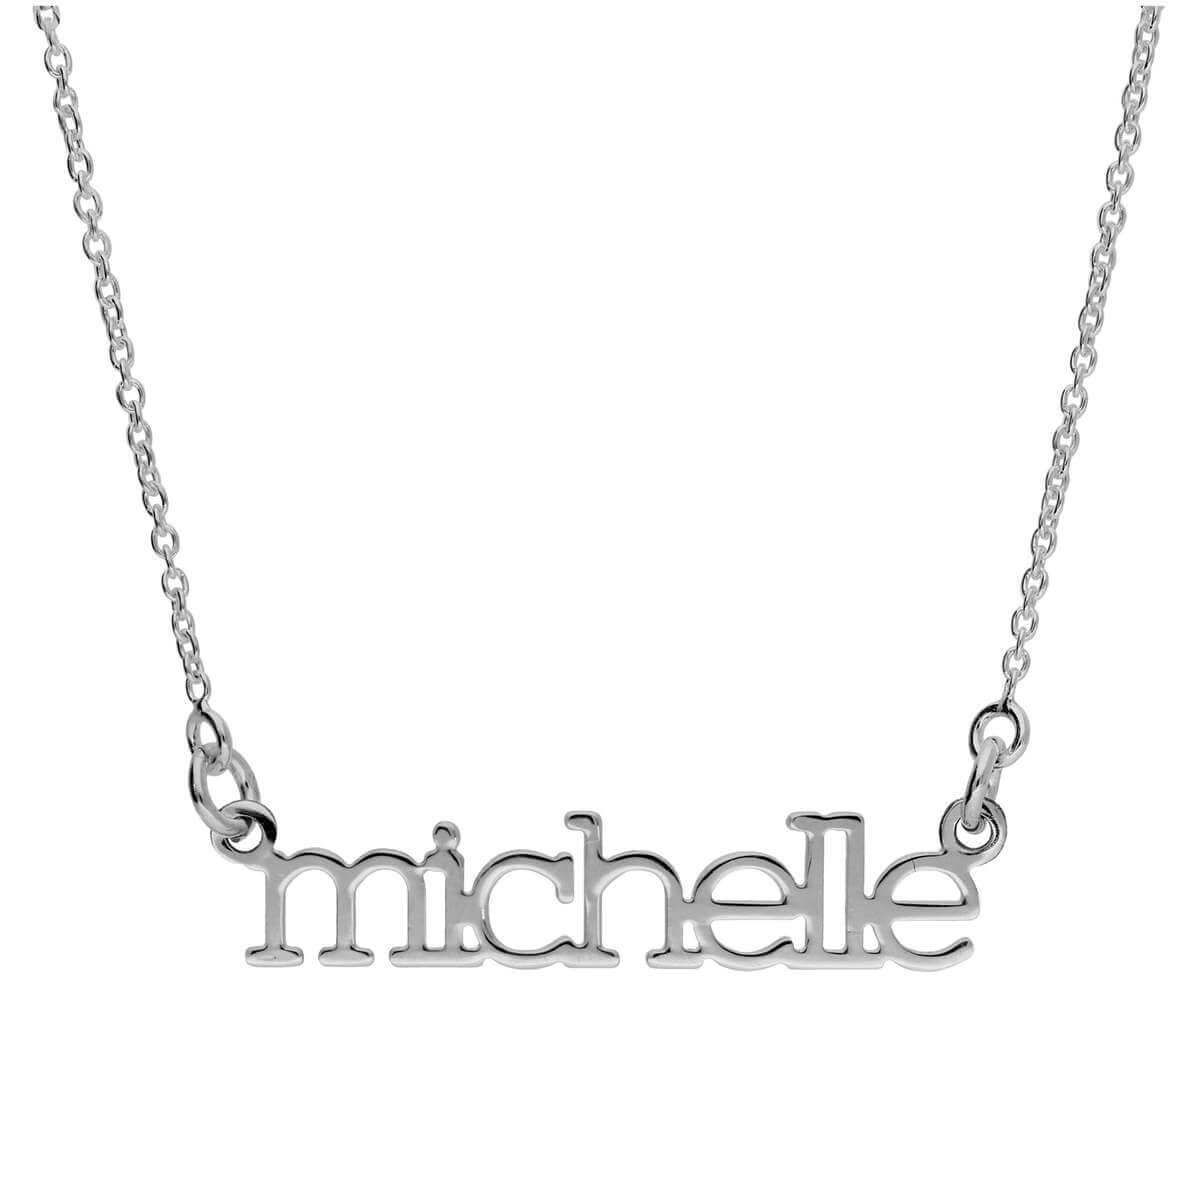 Bespoke Sterling Silver Personalised Name JB Necklace 17+1